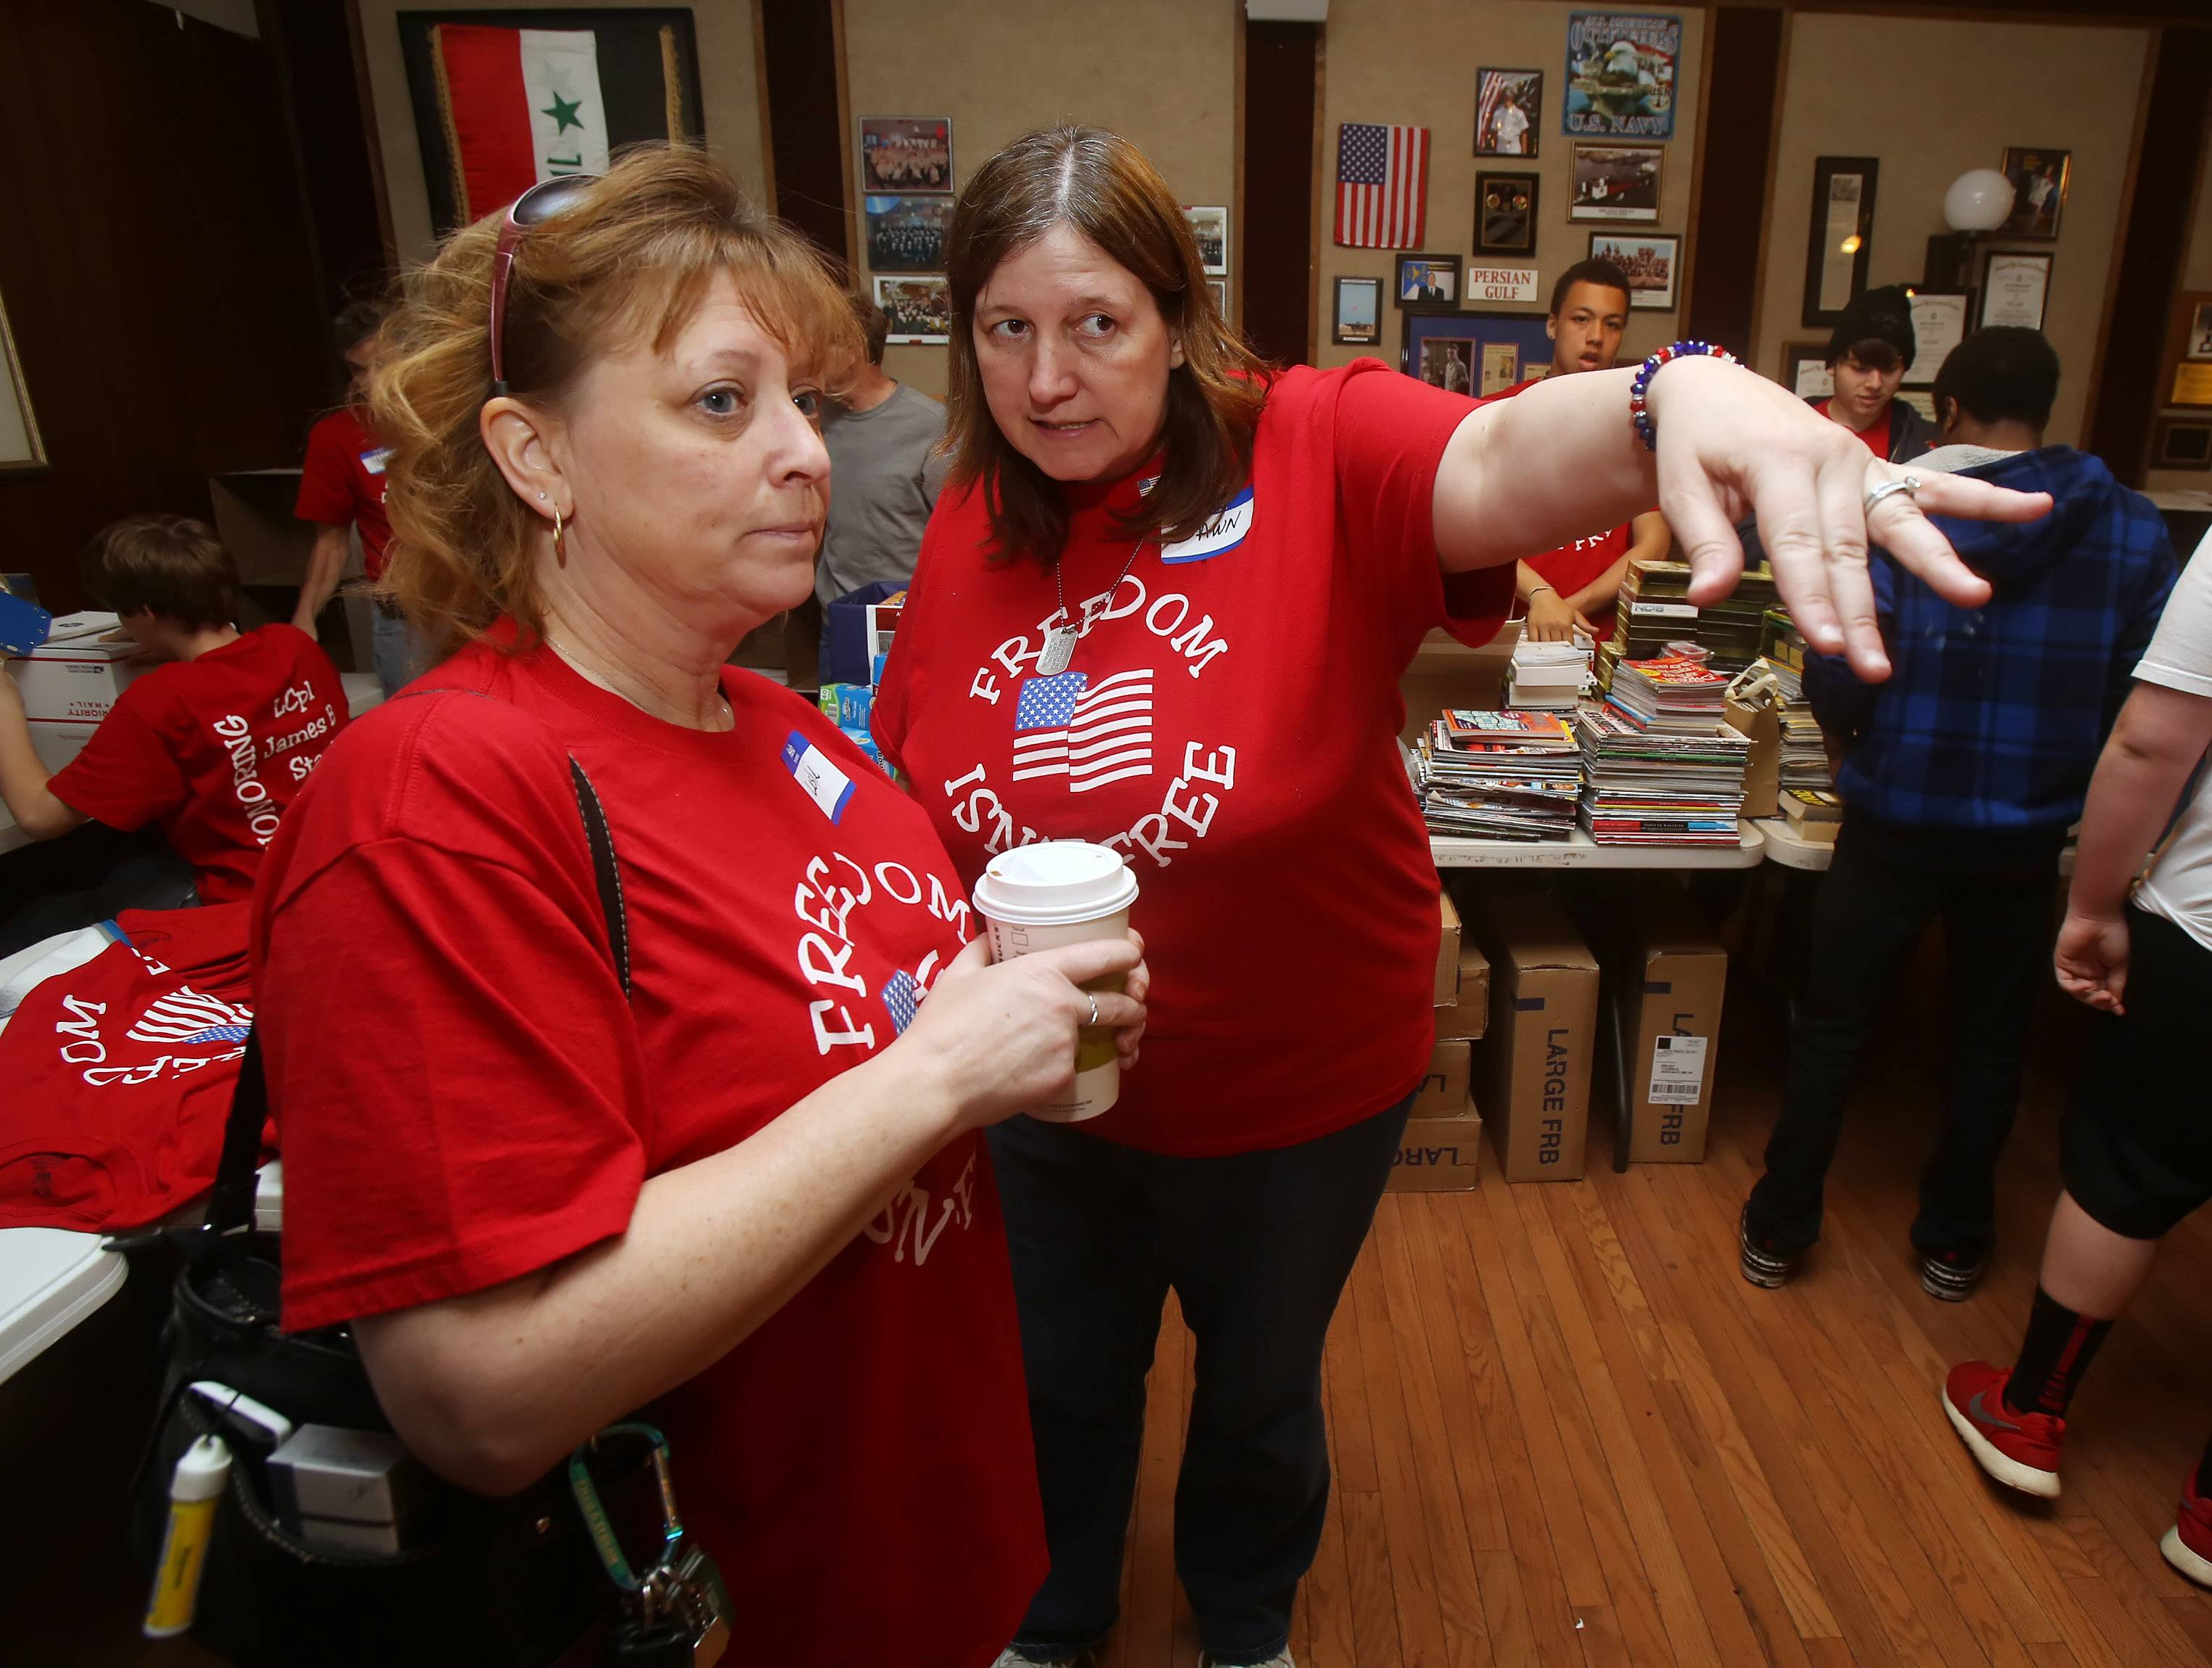 Dawn Hedrick, right, directs Leslie Anderson where help is needed as family and friends of fallen Arlington Heights Marine James Stack pack boxes of donations at the Arlington Heights American Legion Hall. The donations will be sent to troops overseas.